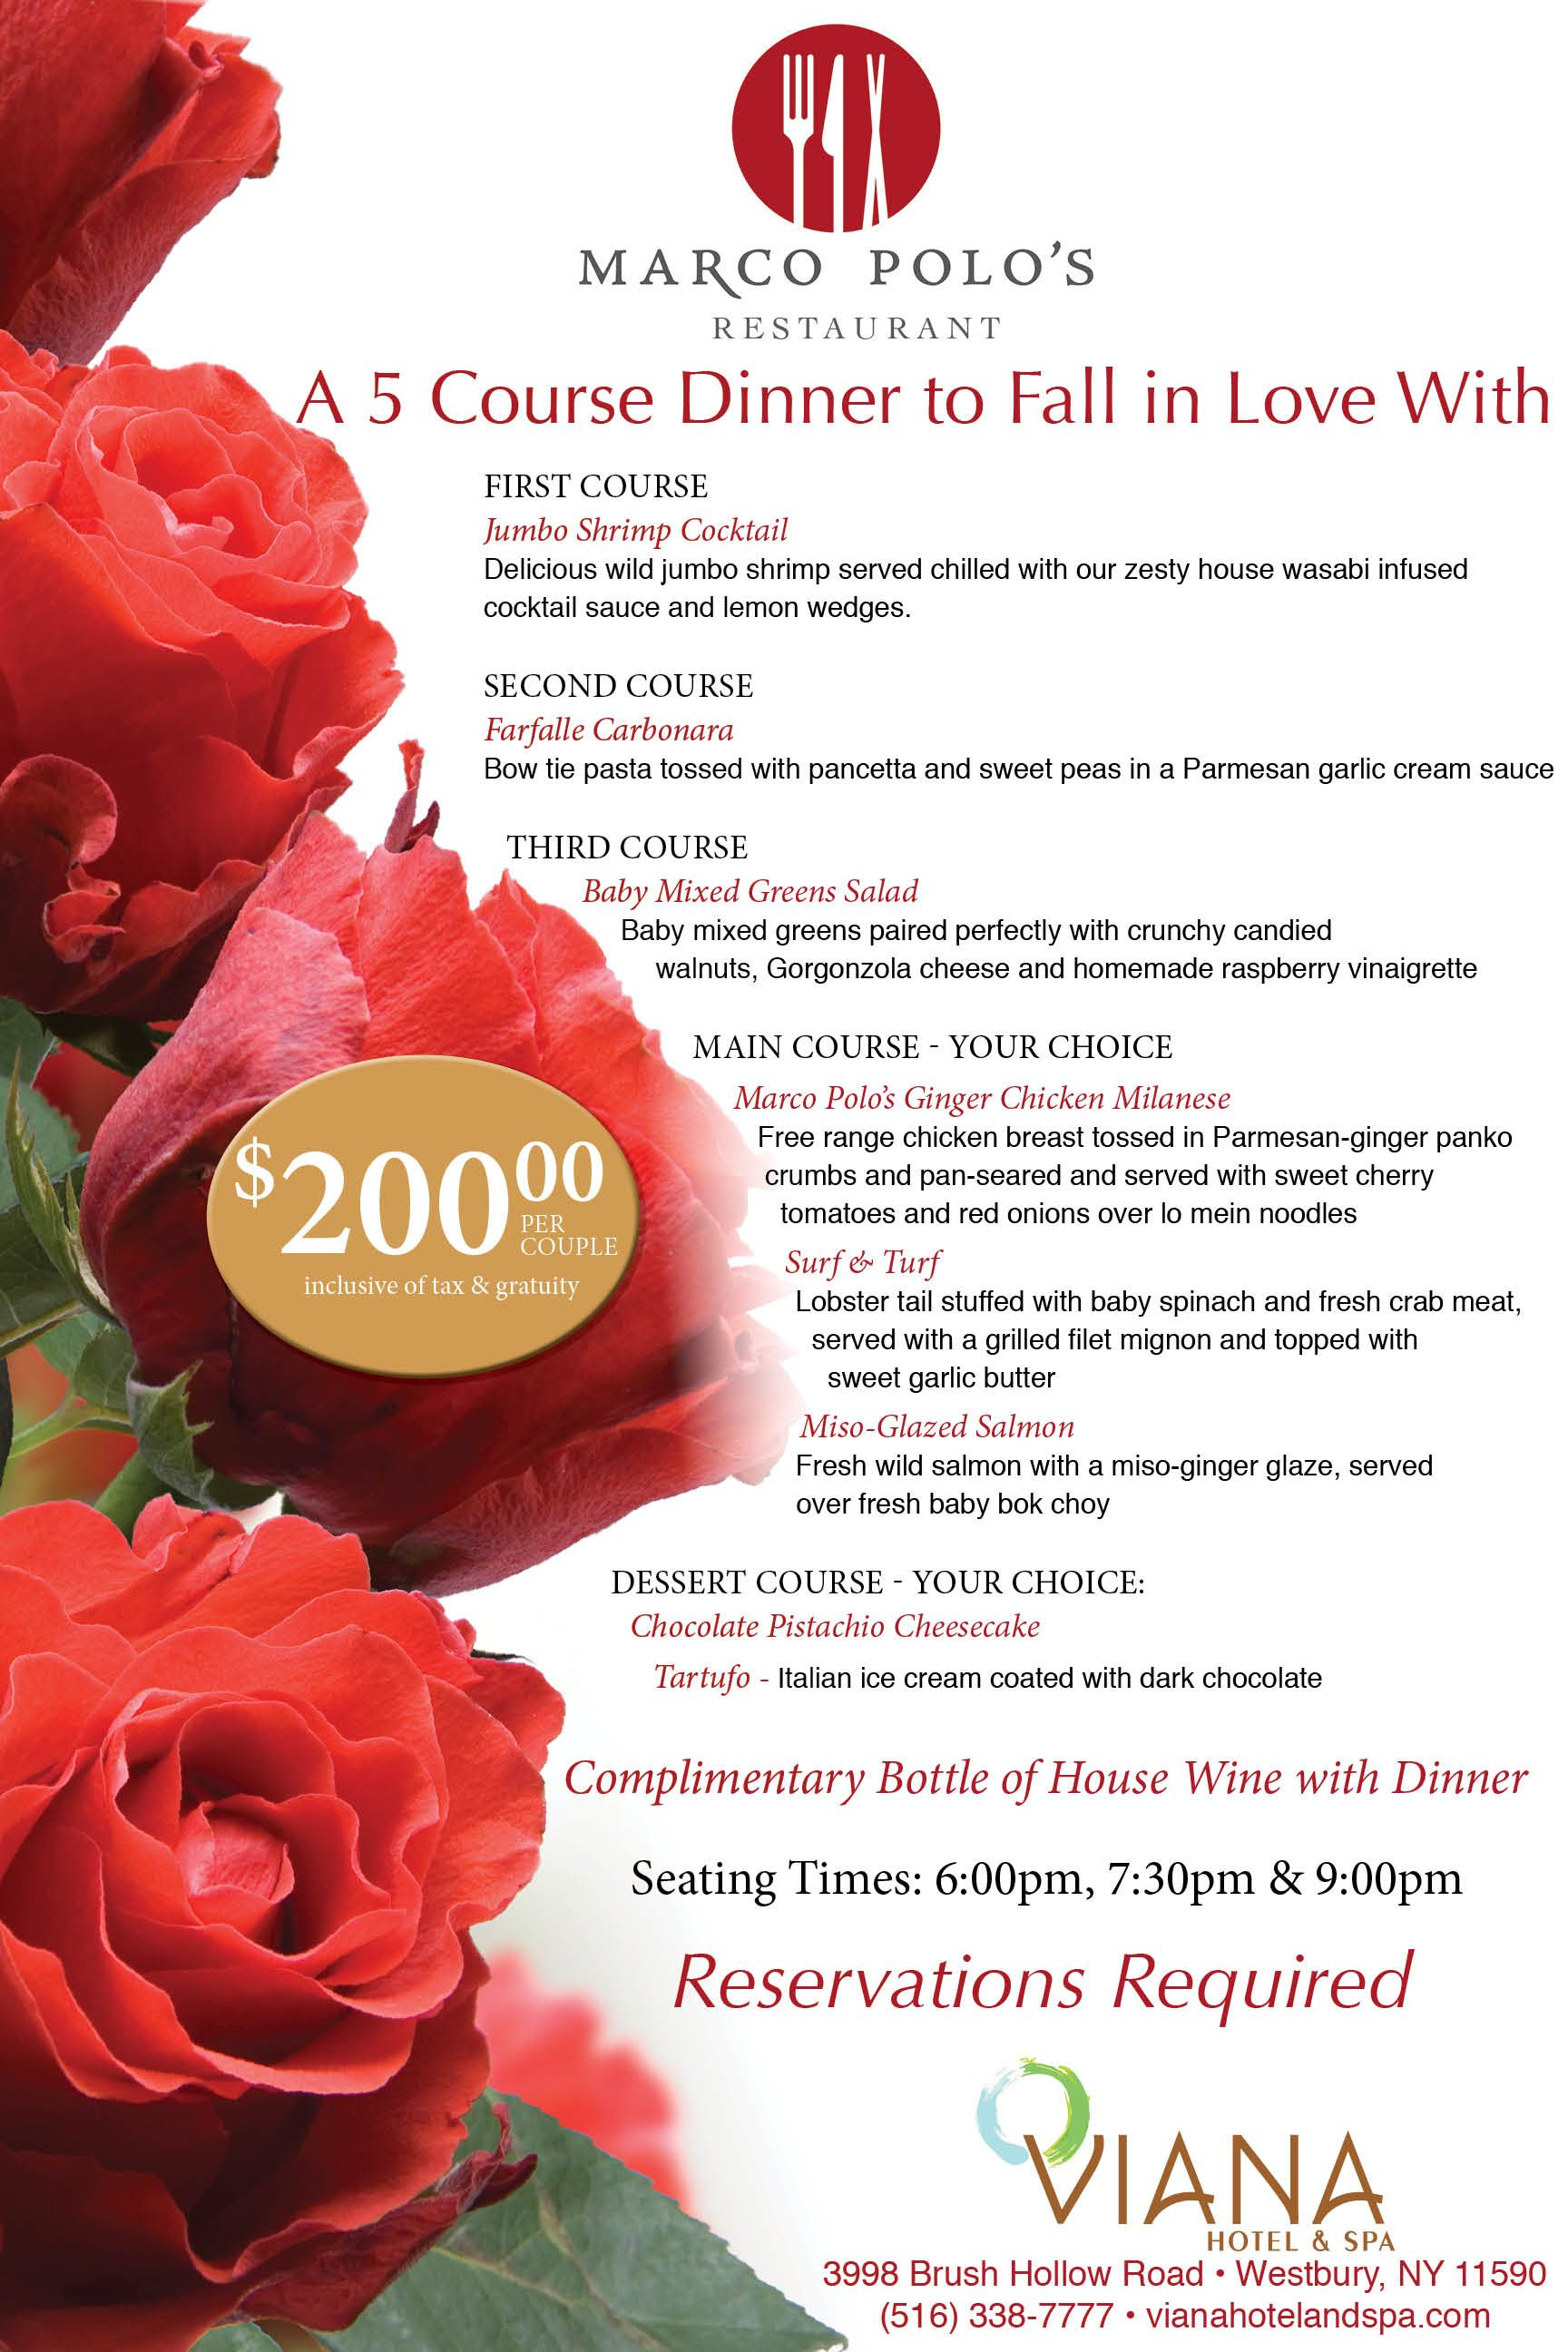 Valentines 5 Course Dinner For Two At Viana Hotel And Spa In Marco Polo S Restaurant Valentines Food Dinner Valentines Day Dinner 5 Course Meal